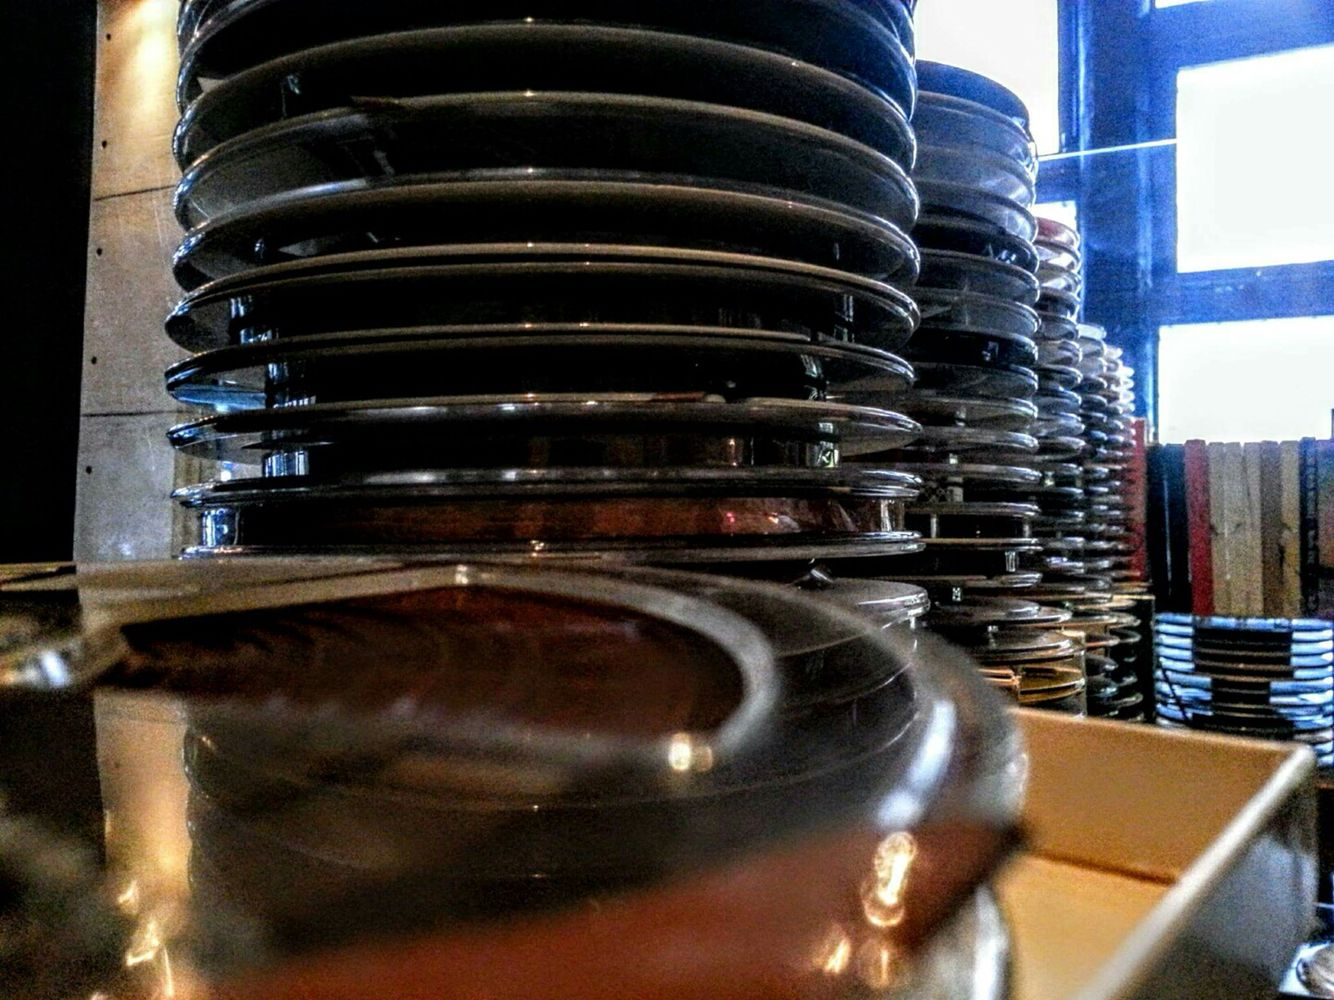 Stack of Reel to Reel Tapes